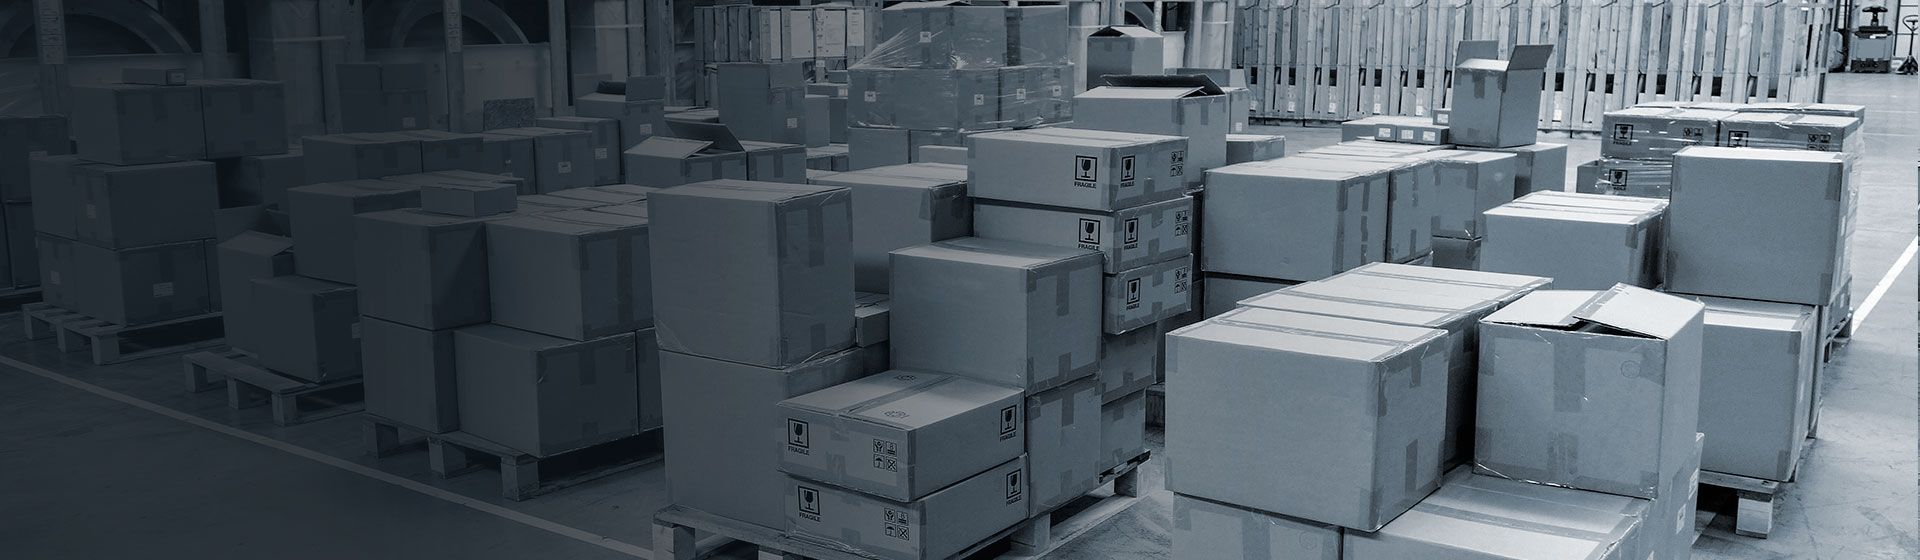 China Freight offers competitive rates and reliable